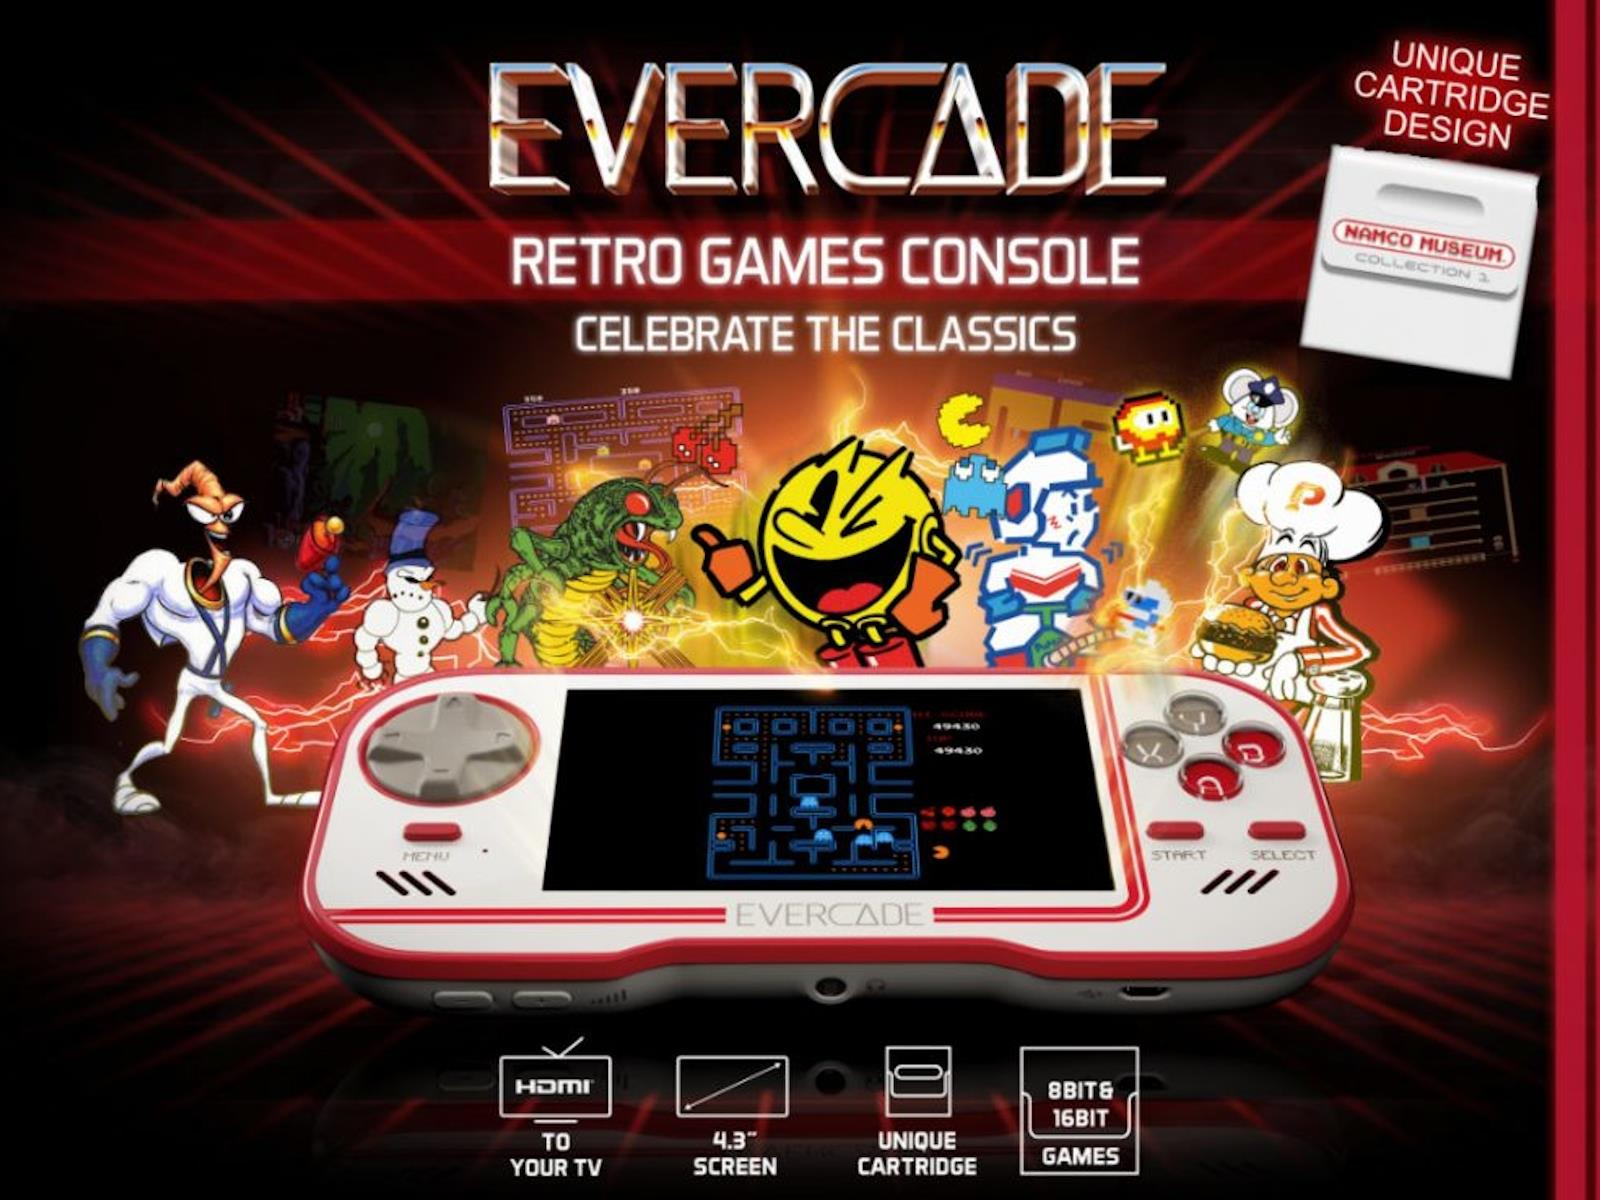 Preorders Open For Funky But Cool Evercade Retro Handheld